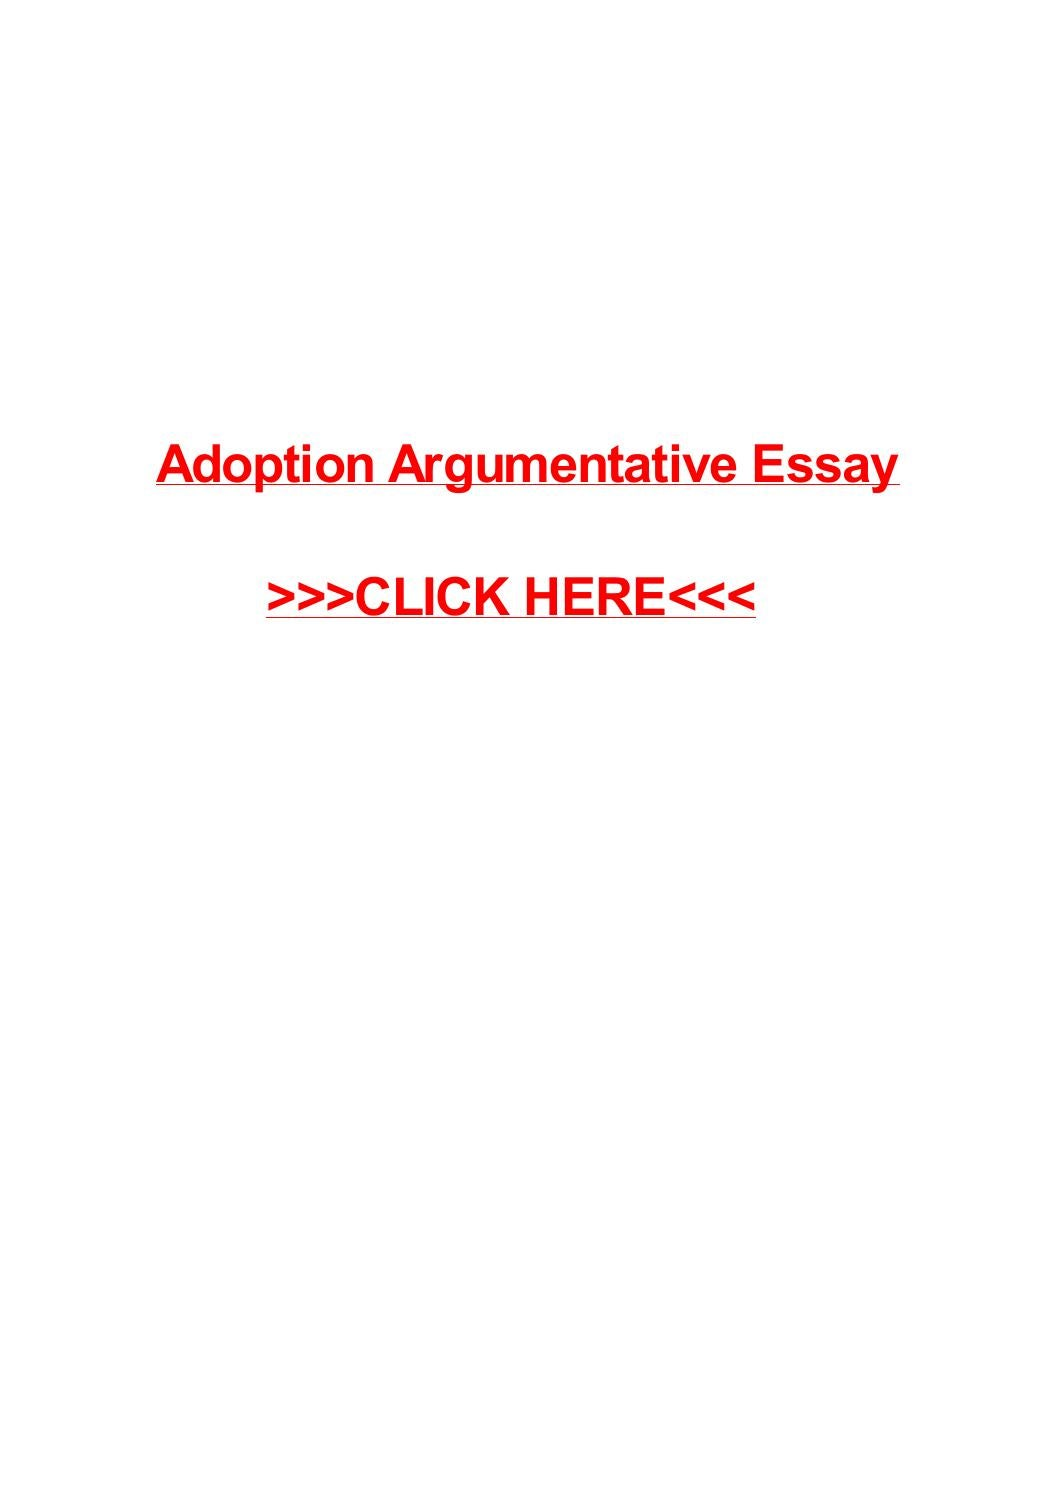 persuasive essay adoption Essays - largest database of quality sample essays and research papers on persuasive essay on open adoption.